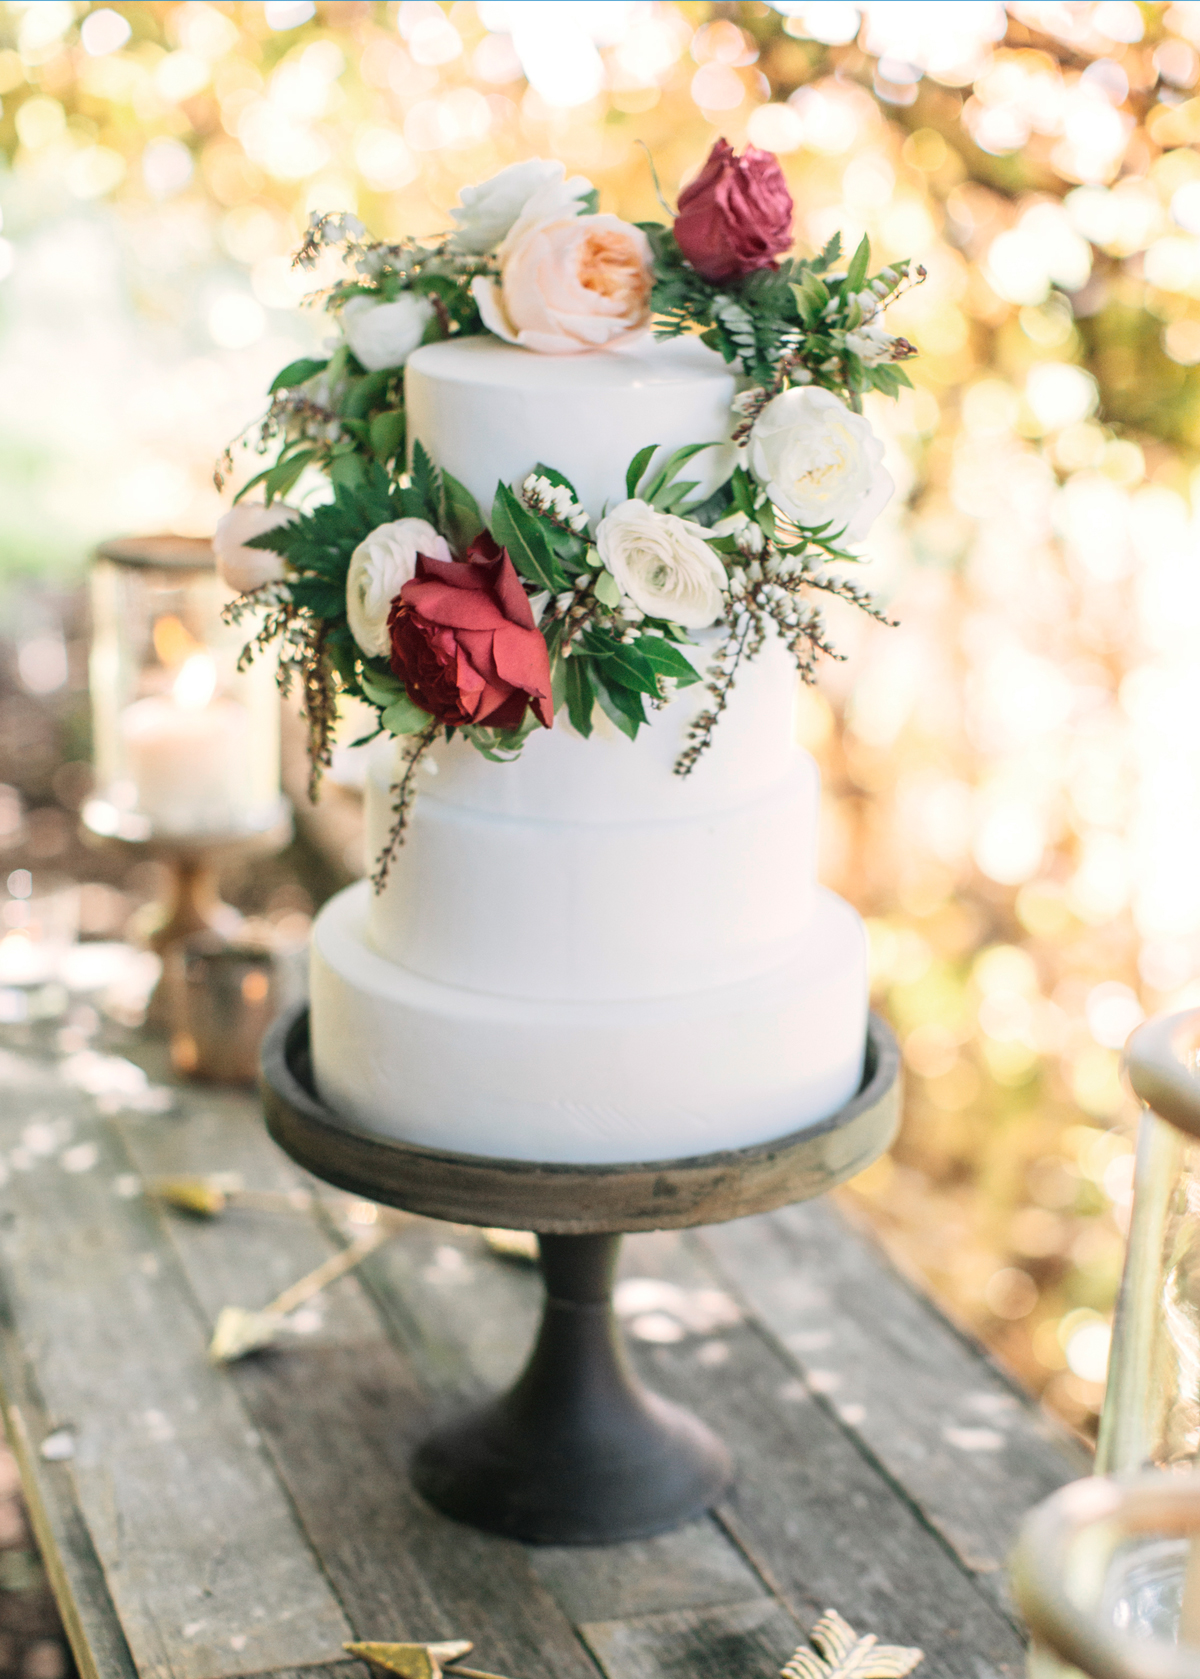 wedding wreath with roses decorating white wedding cake